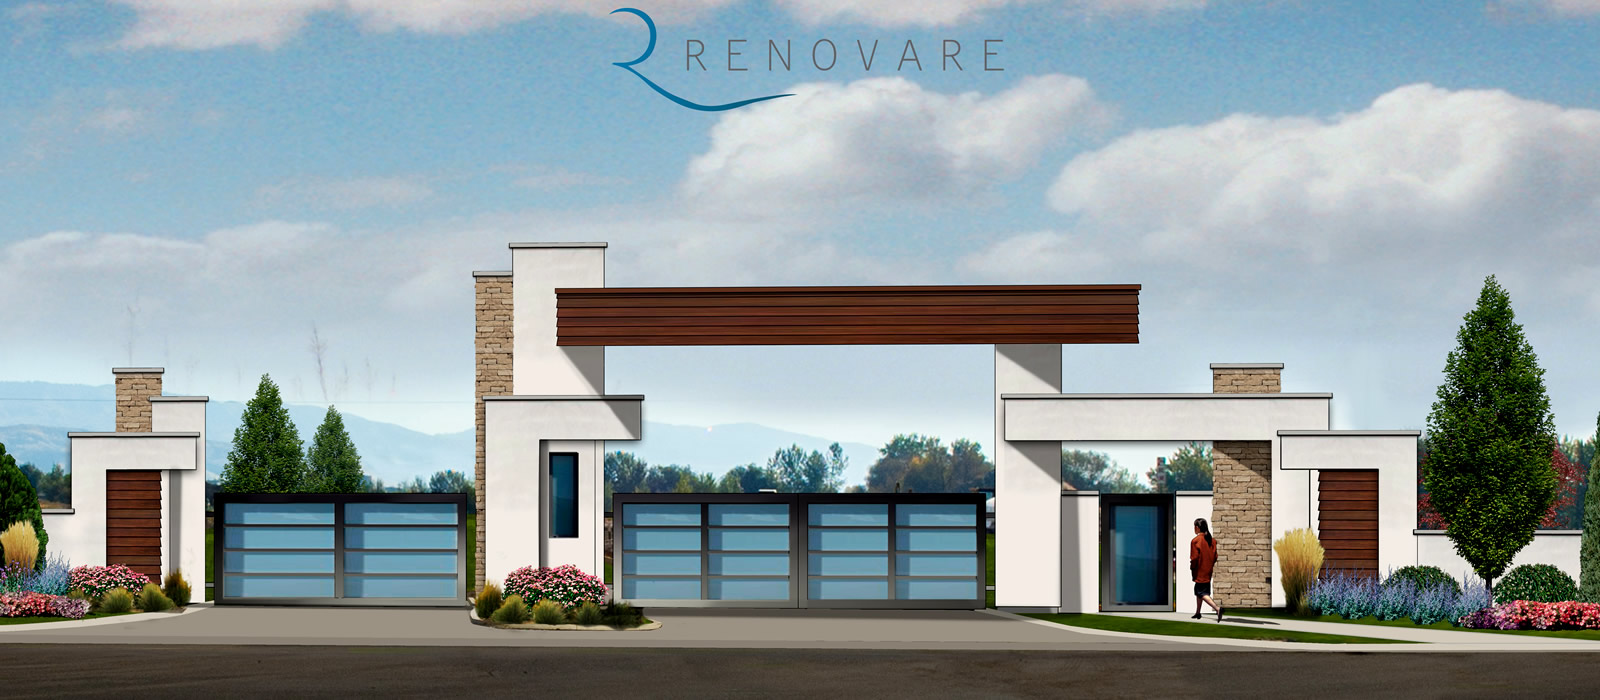 Renovare Community Homes for Sale